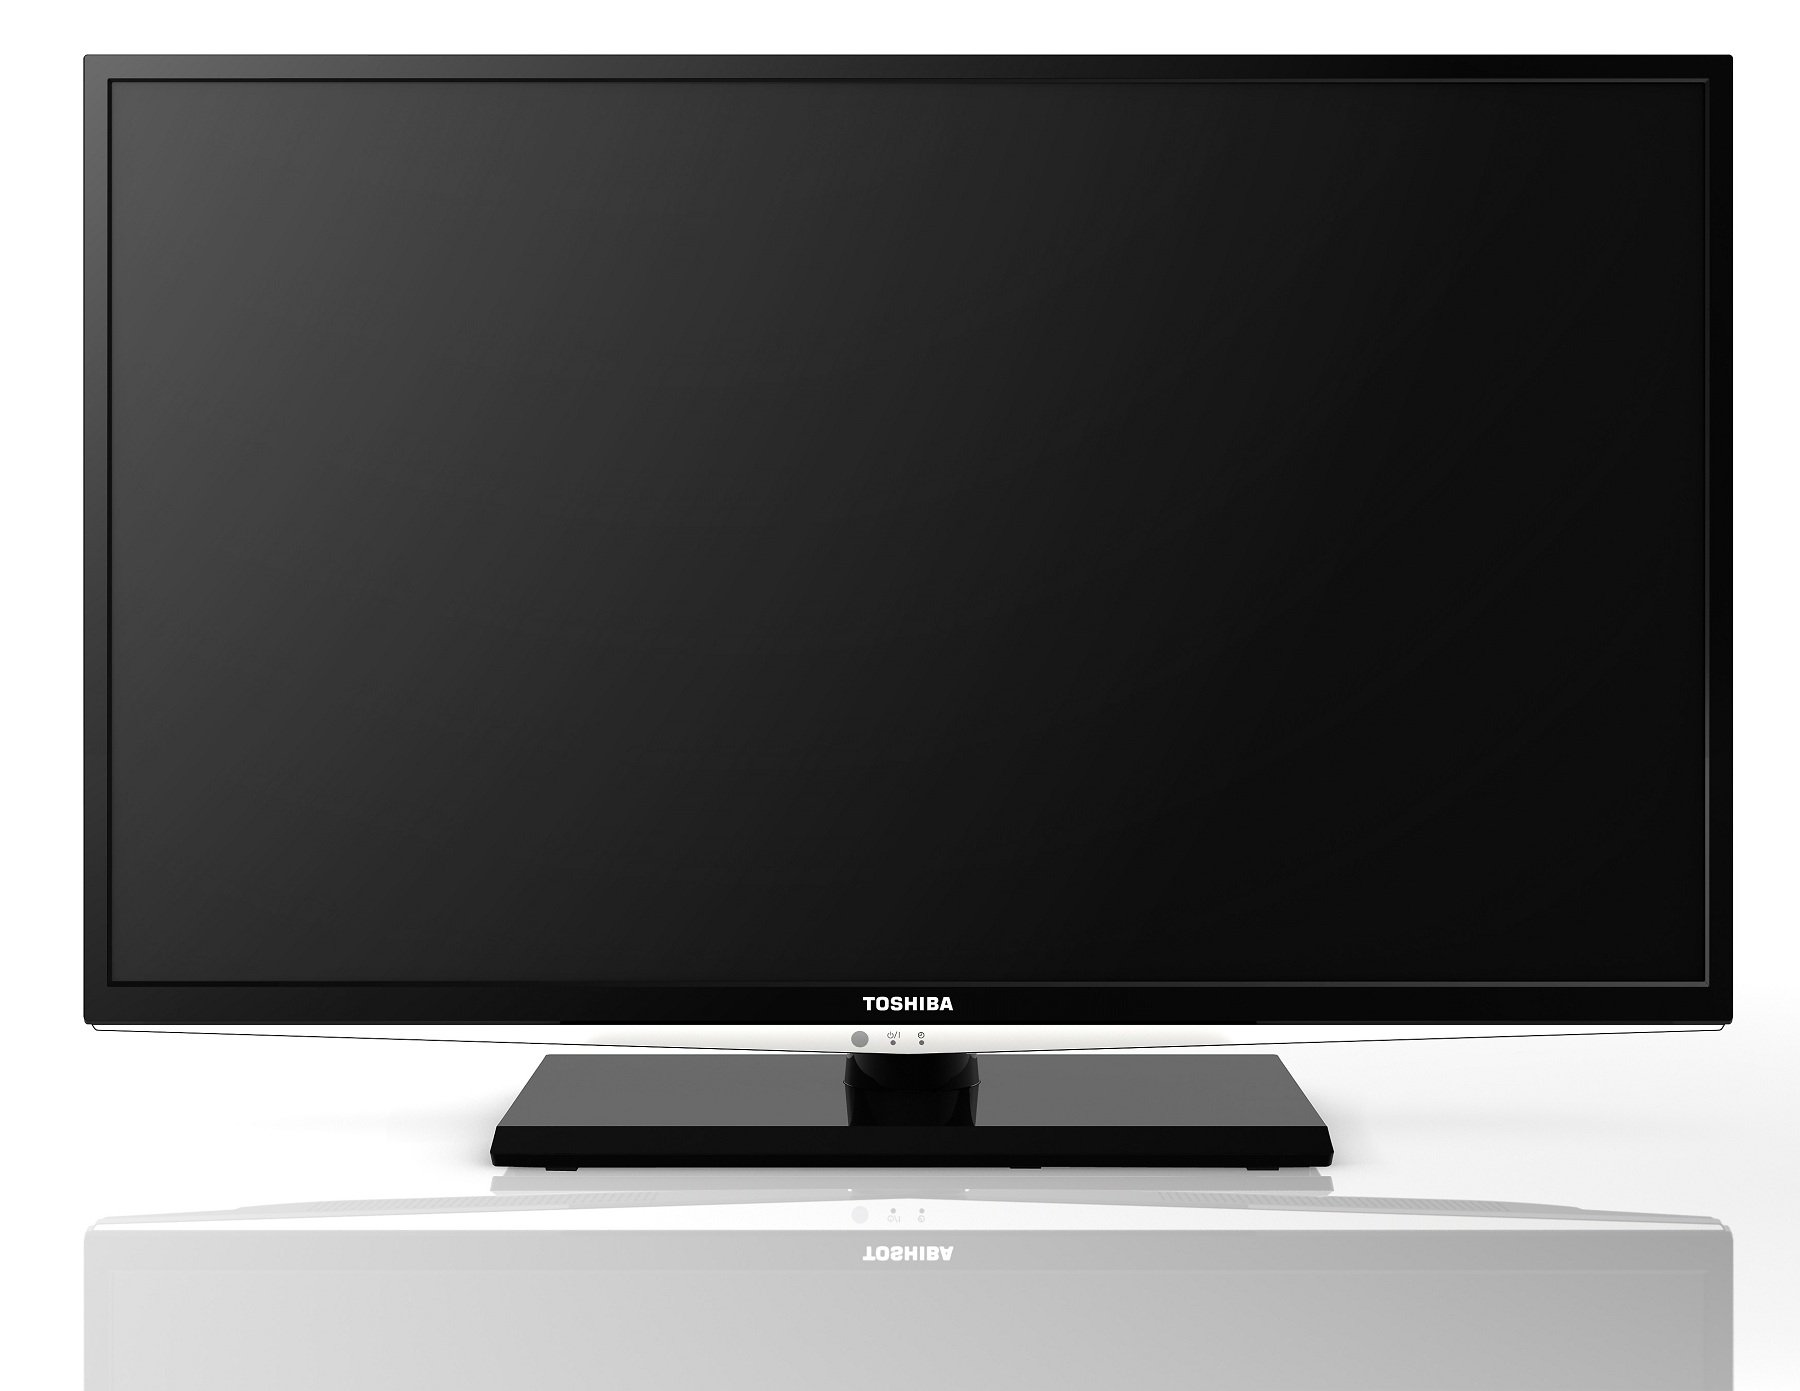 toshiba 40hl933g 101 6 cm 40 zoll fernseher full hd twin tuner. Black Bedroom Furniture Sets. Home Design Ideas